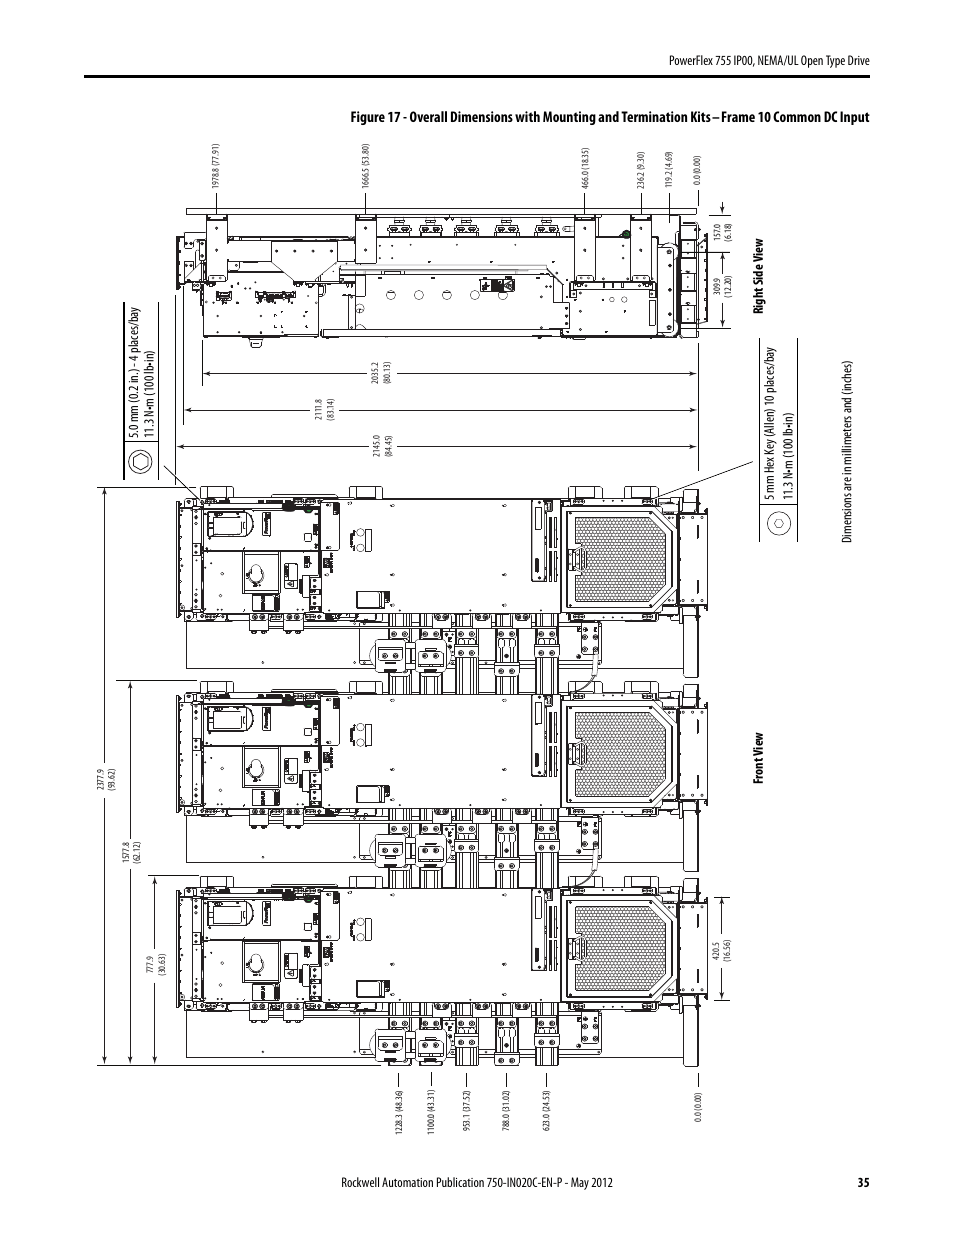 [WRG-7799] Powerflex 755 Wiring Diagram